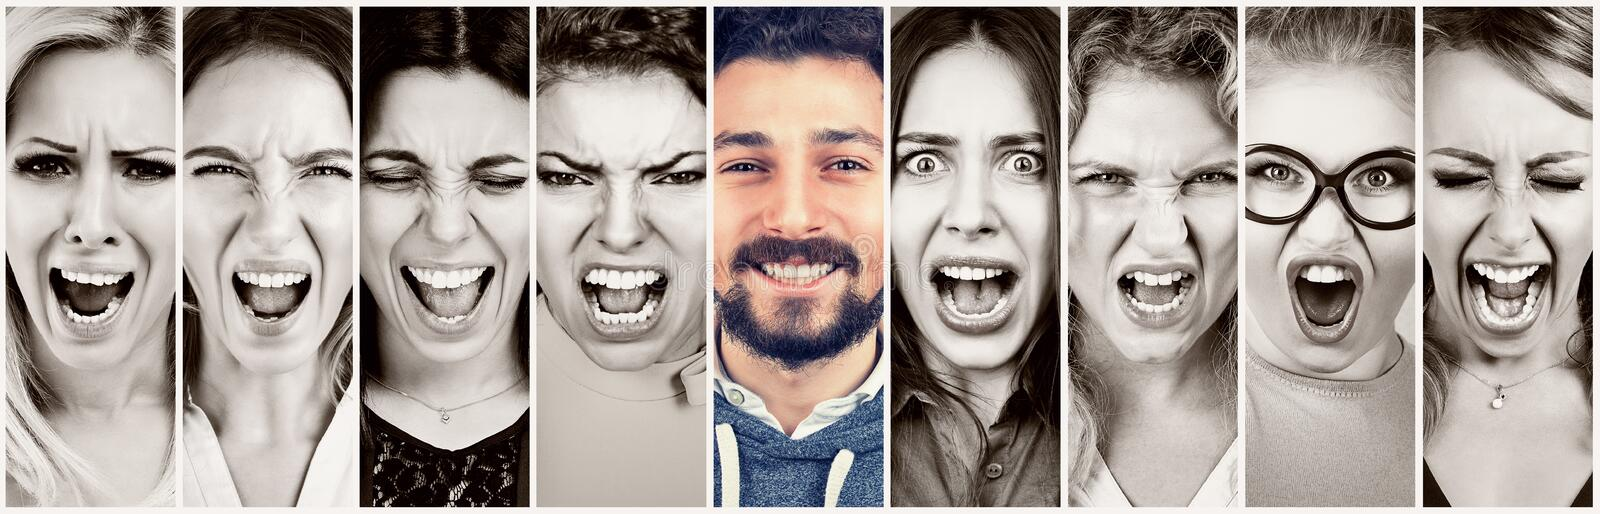 Group of frustrated stressed angry women and a happy smiling beard man stock images